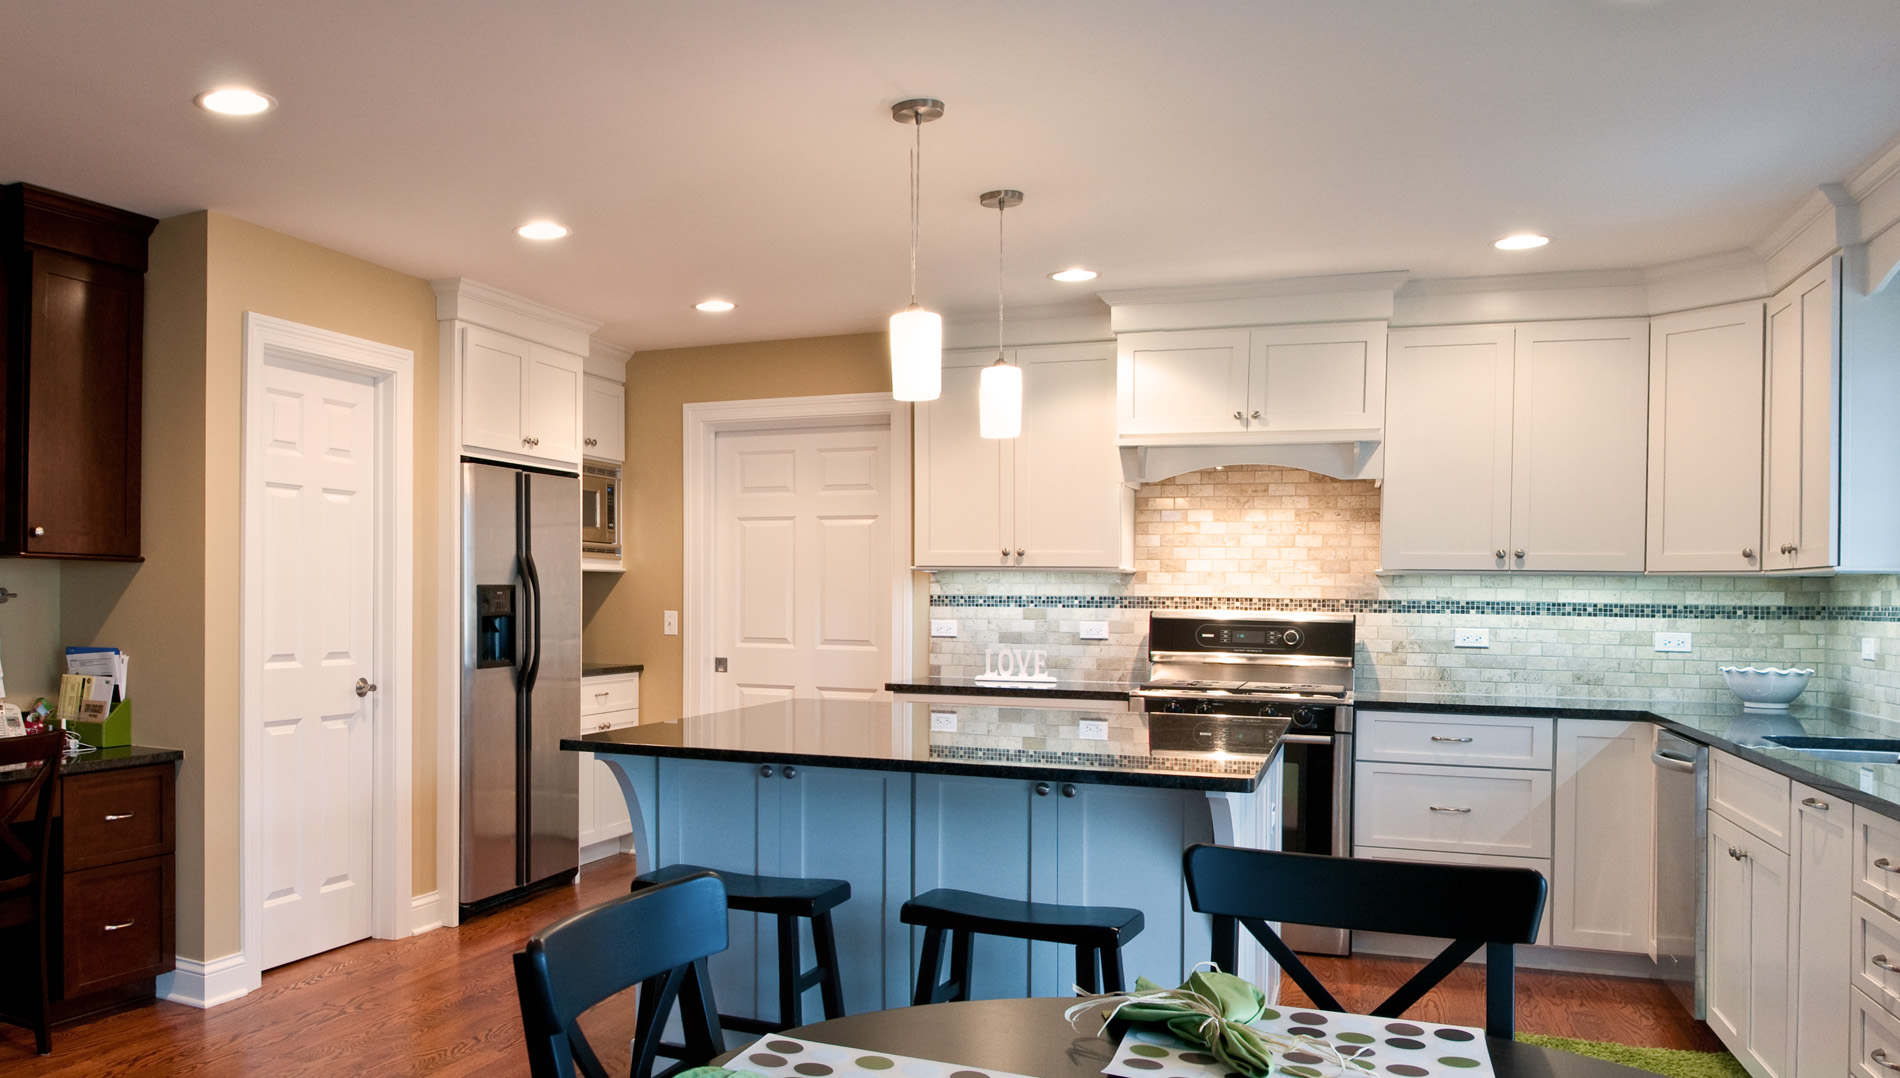 Kitchen Remodeling Gallery Naperville, Aurora, Wheaton - Part 5